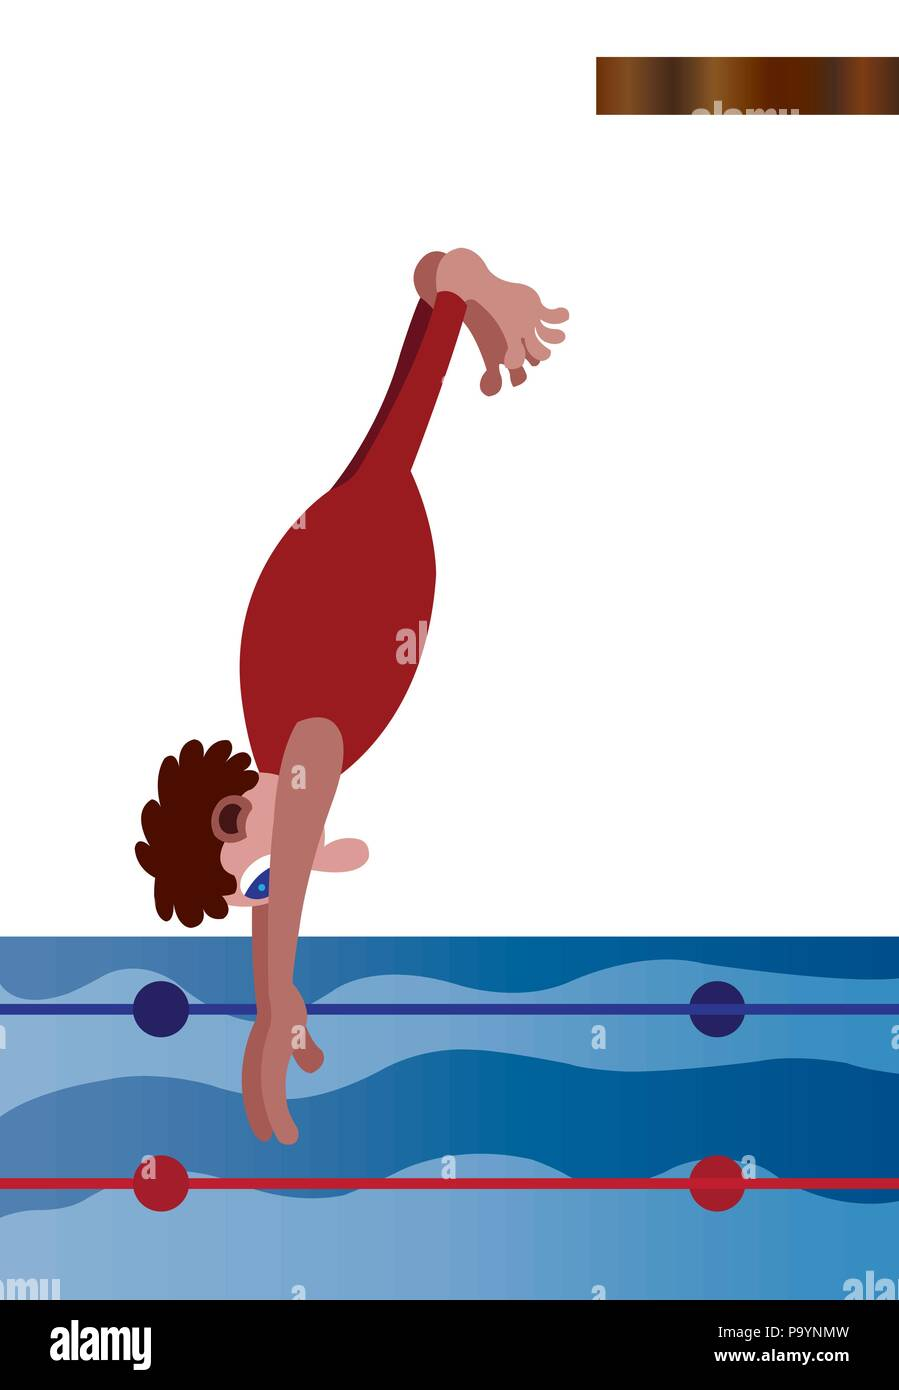 a professional diver plunging into the water - Stock Vector